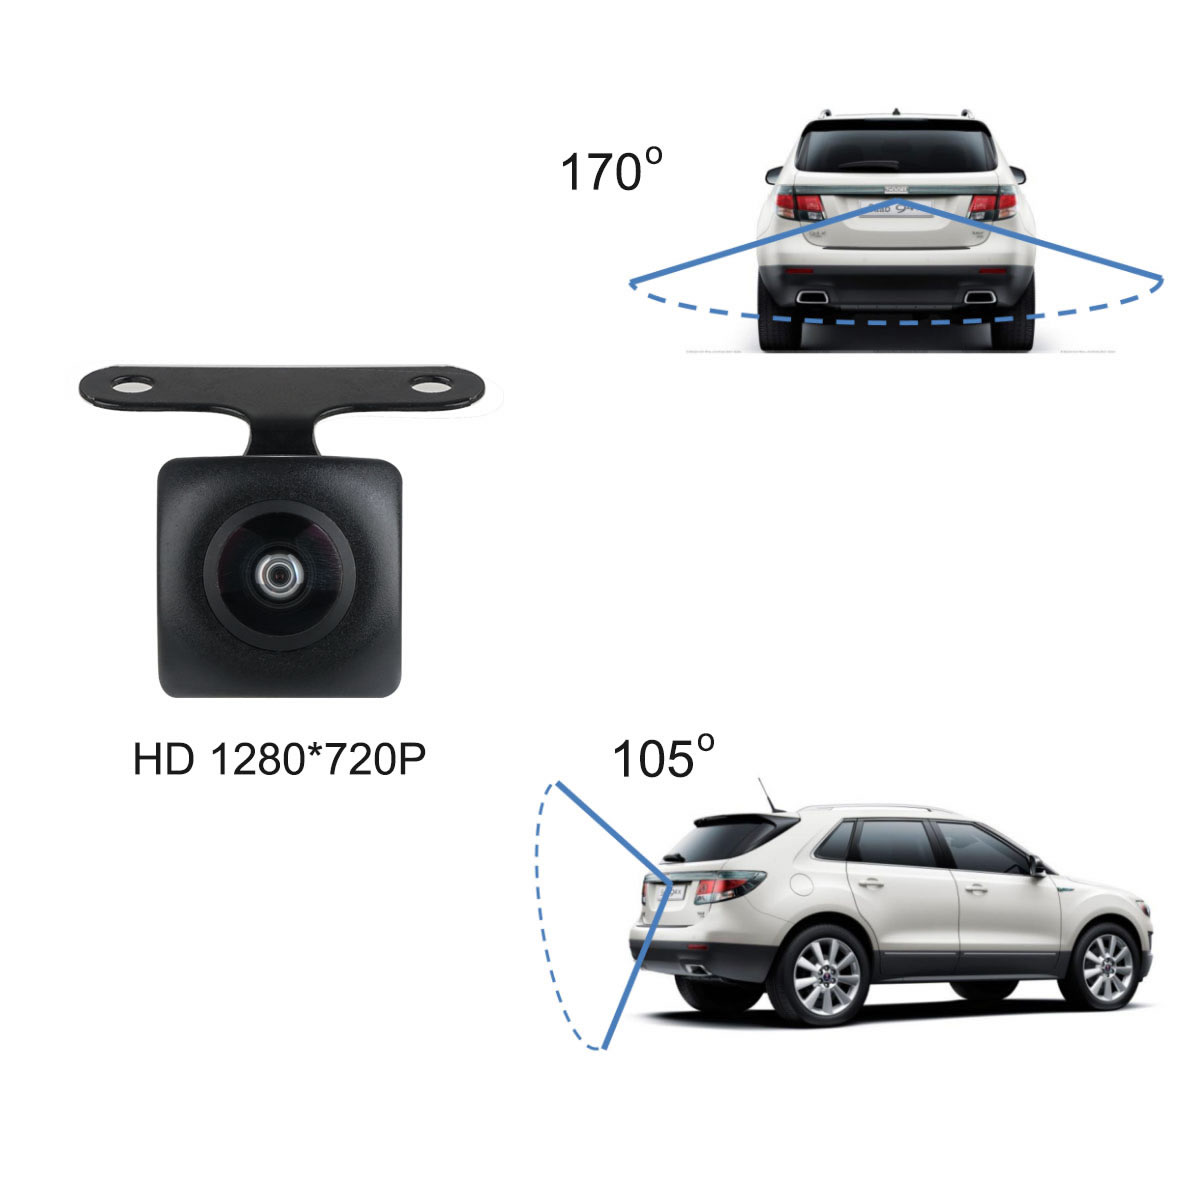 cheapest Carlinkit Apple CarPlay  Android Auto Carplay Dongle for Android System Screen Smart link Support Mirror-link IOS 13 Carplay